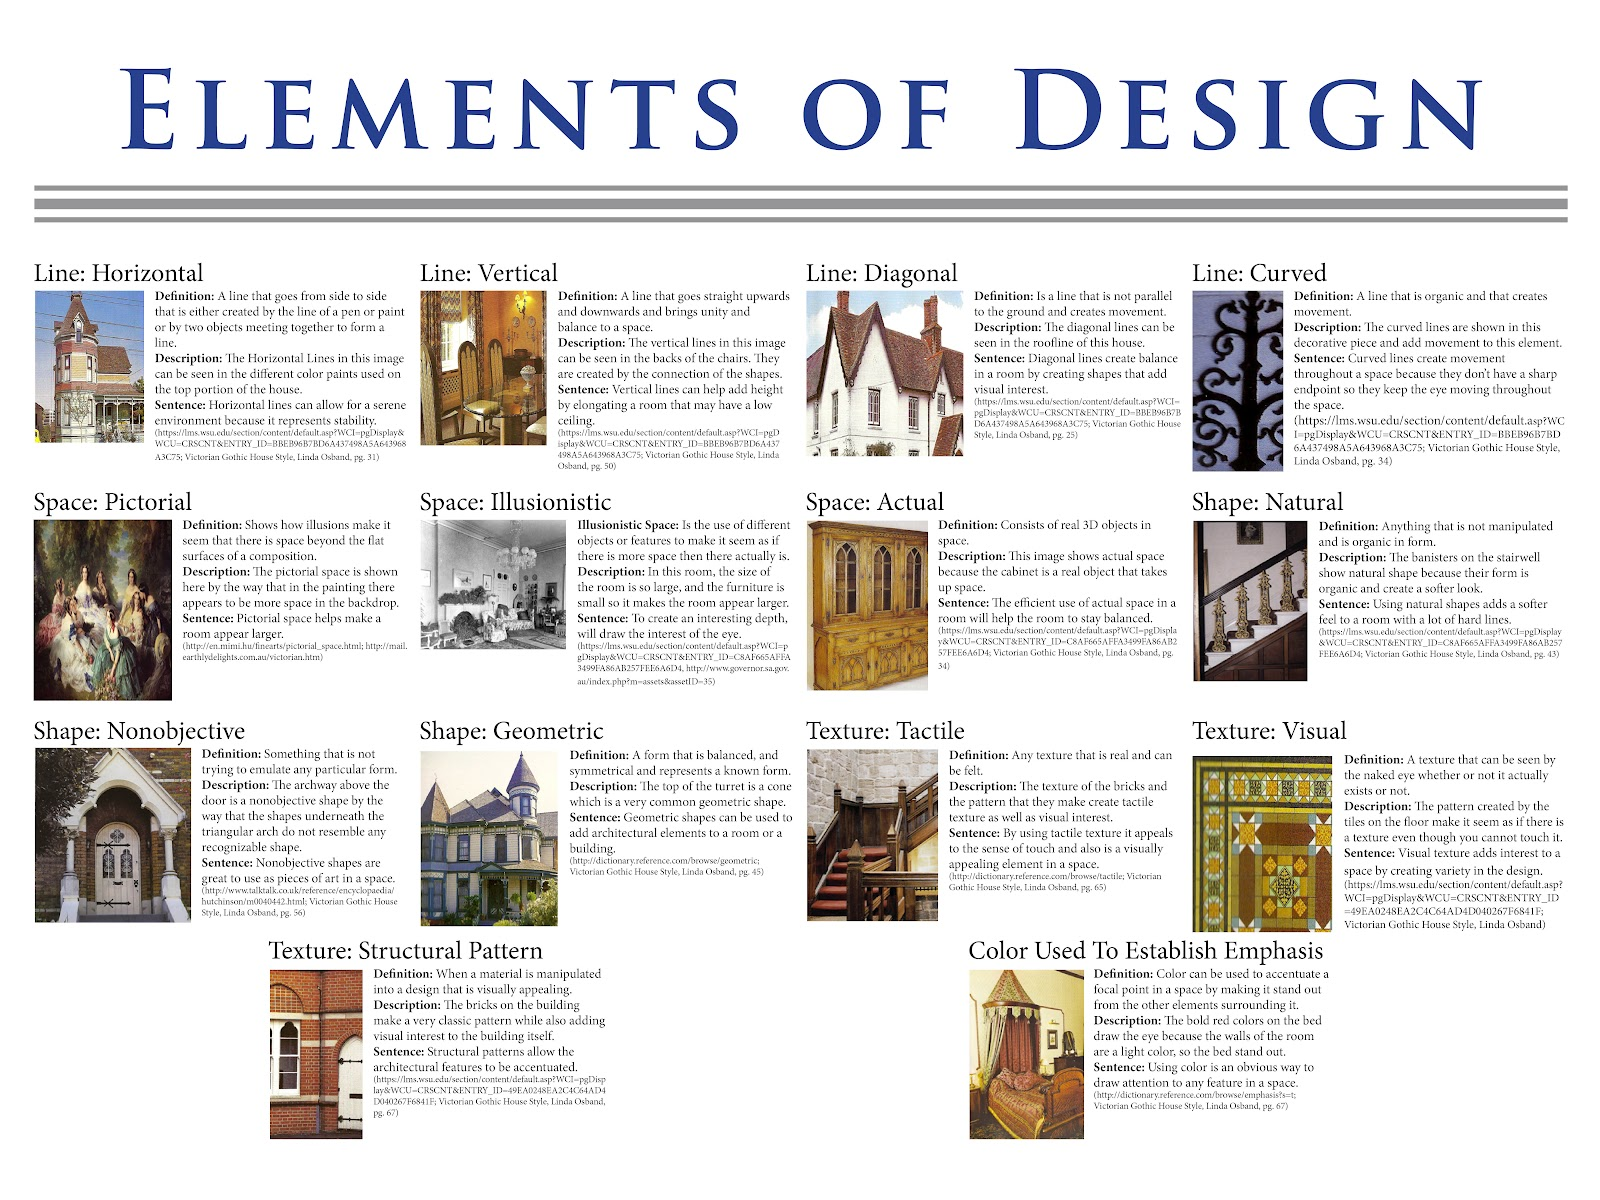 What Are The Elements Of Design : Annie borges design portfolio elements of